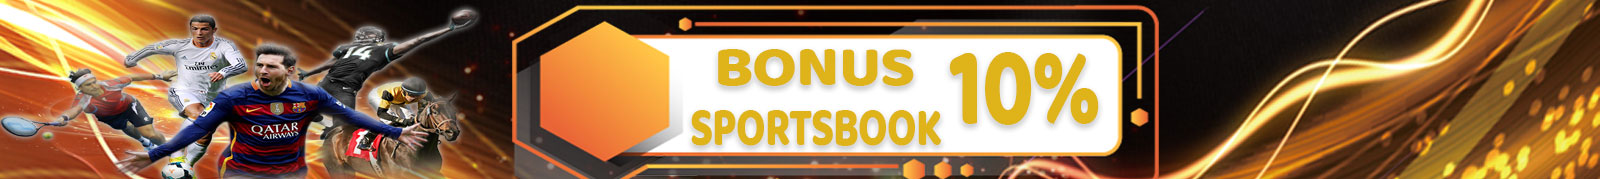 BONUS-SPORTSBOOK-NEW-MEMBER-10%